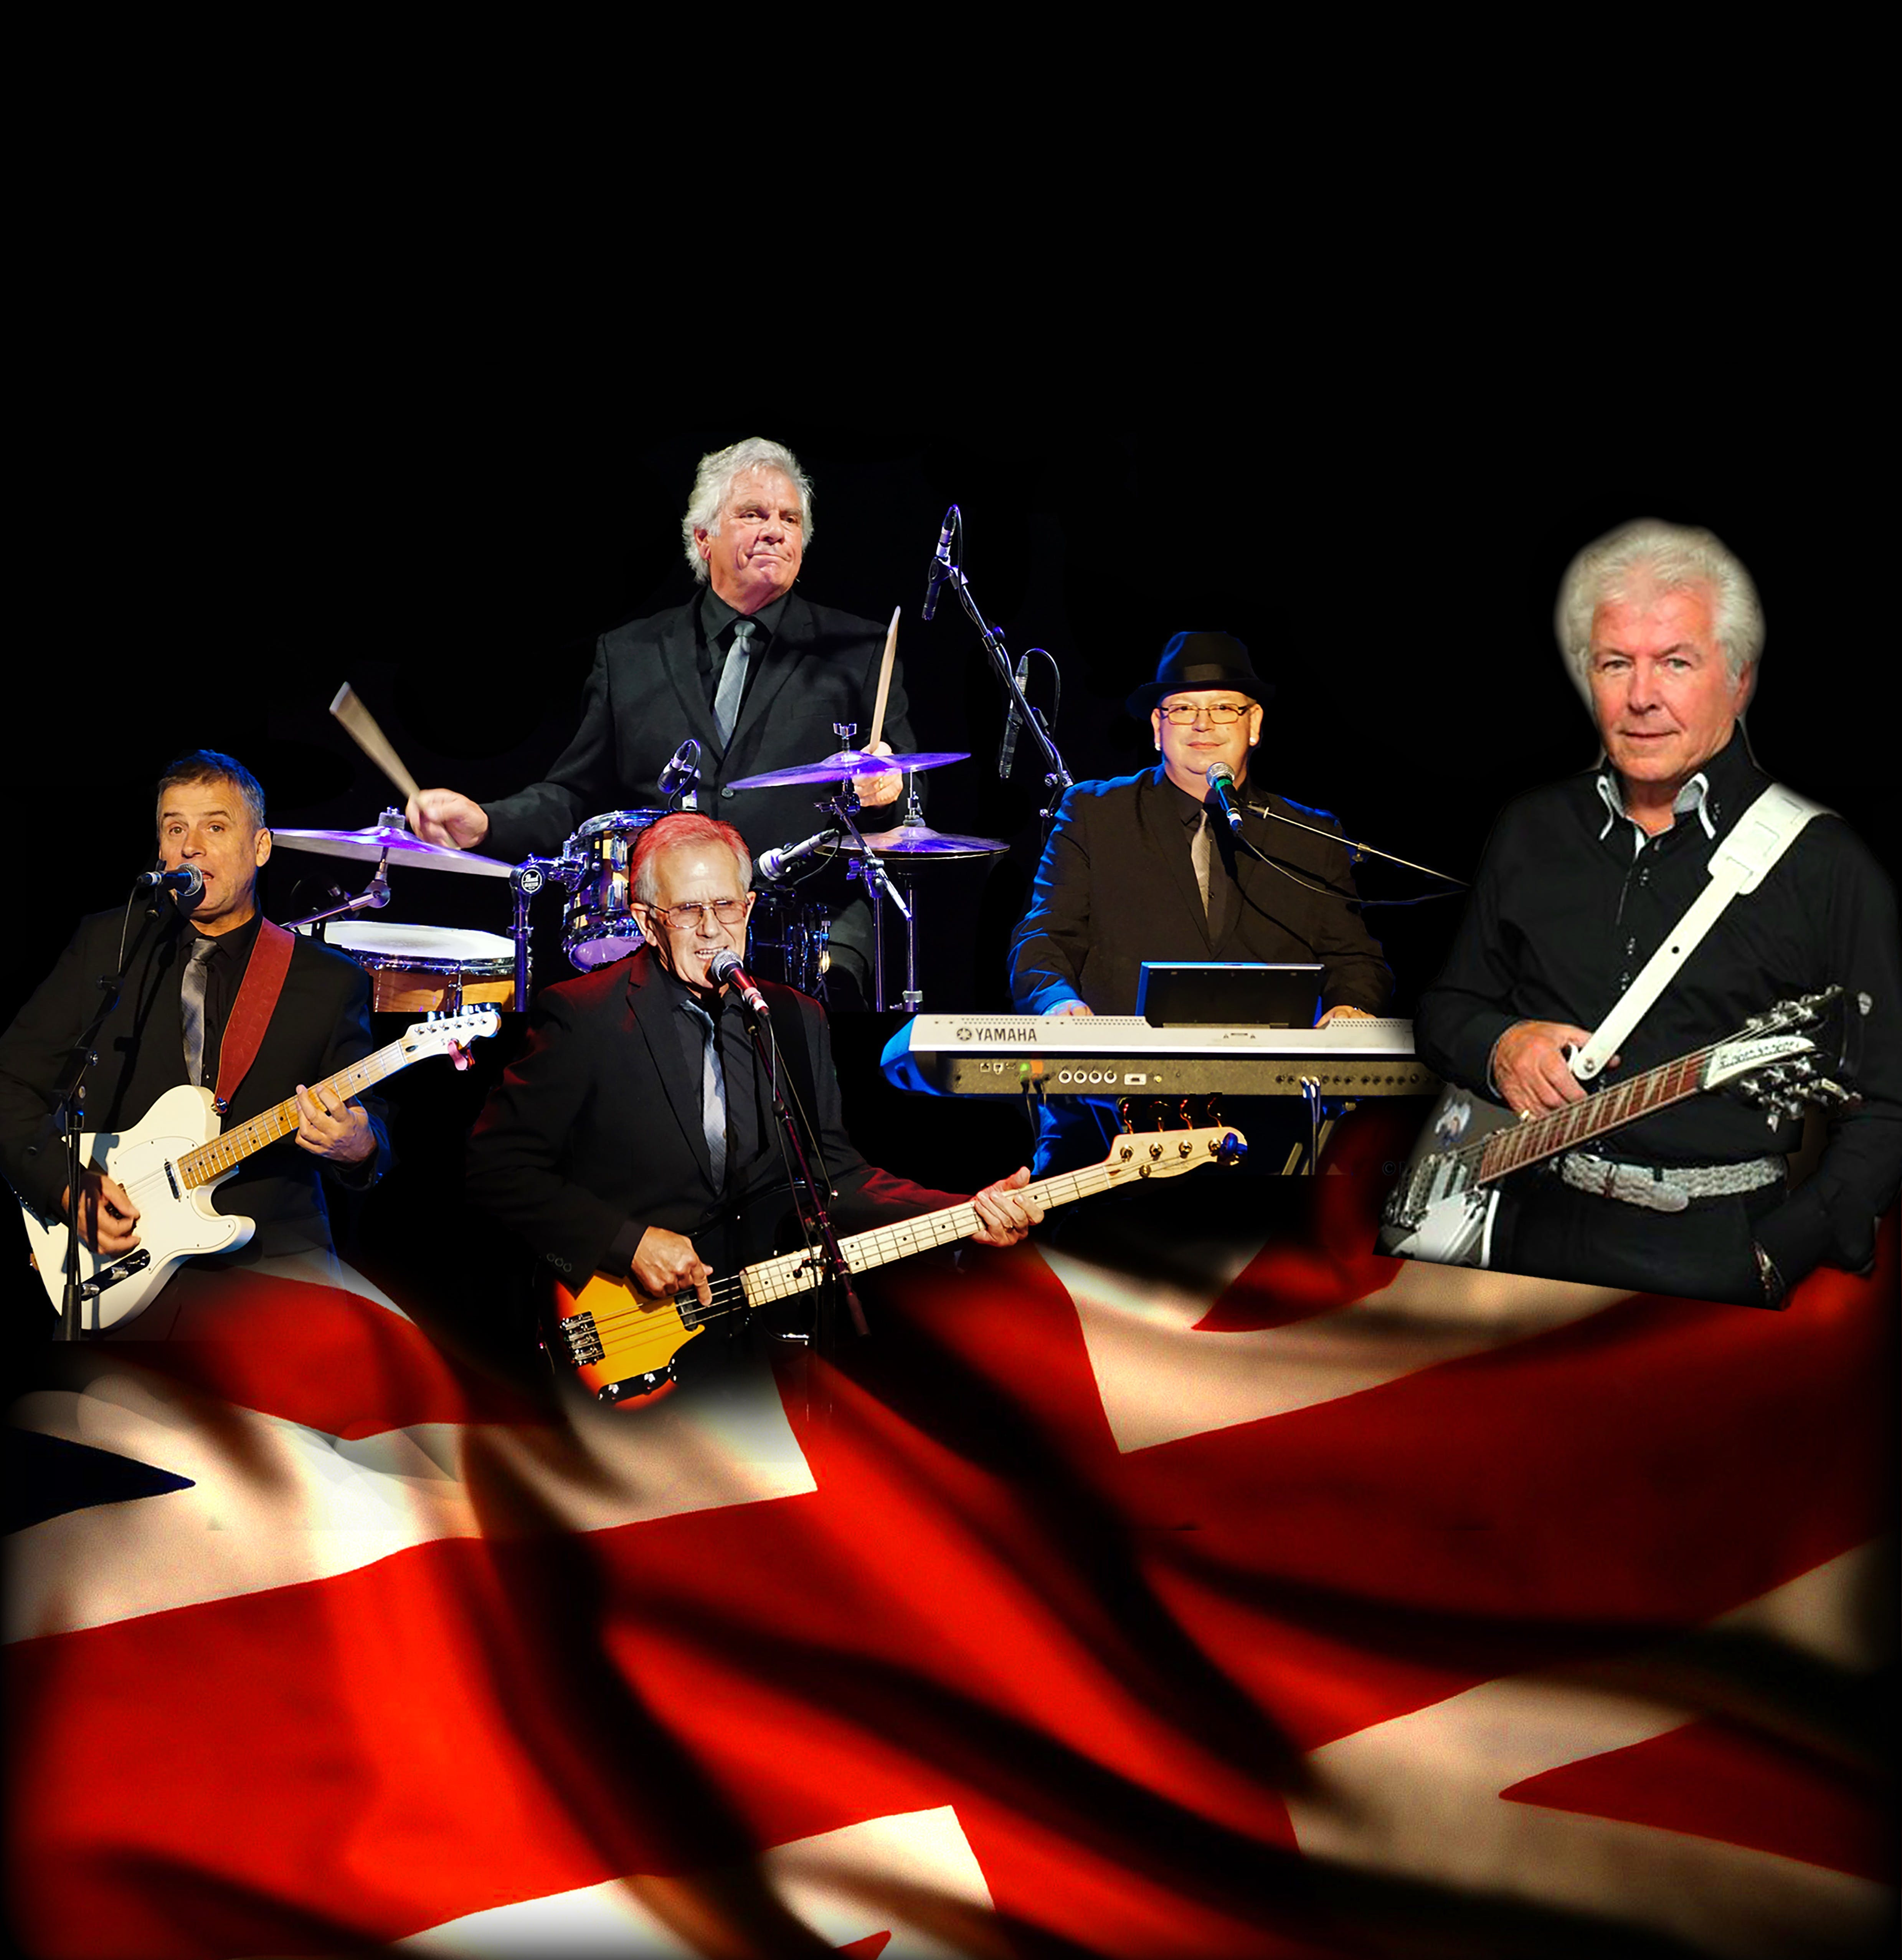 Herman's Hermits with Special Guest Mike Pender - The Six O'Clock Hop - Tourism Cairns